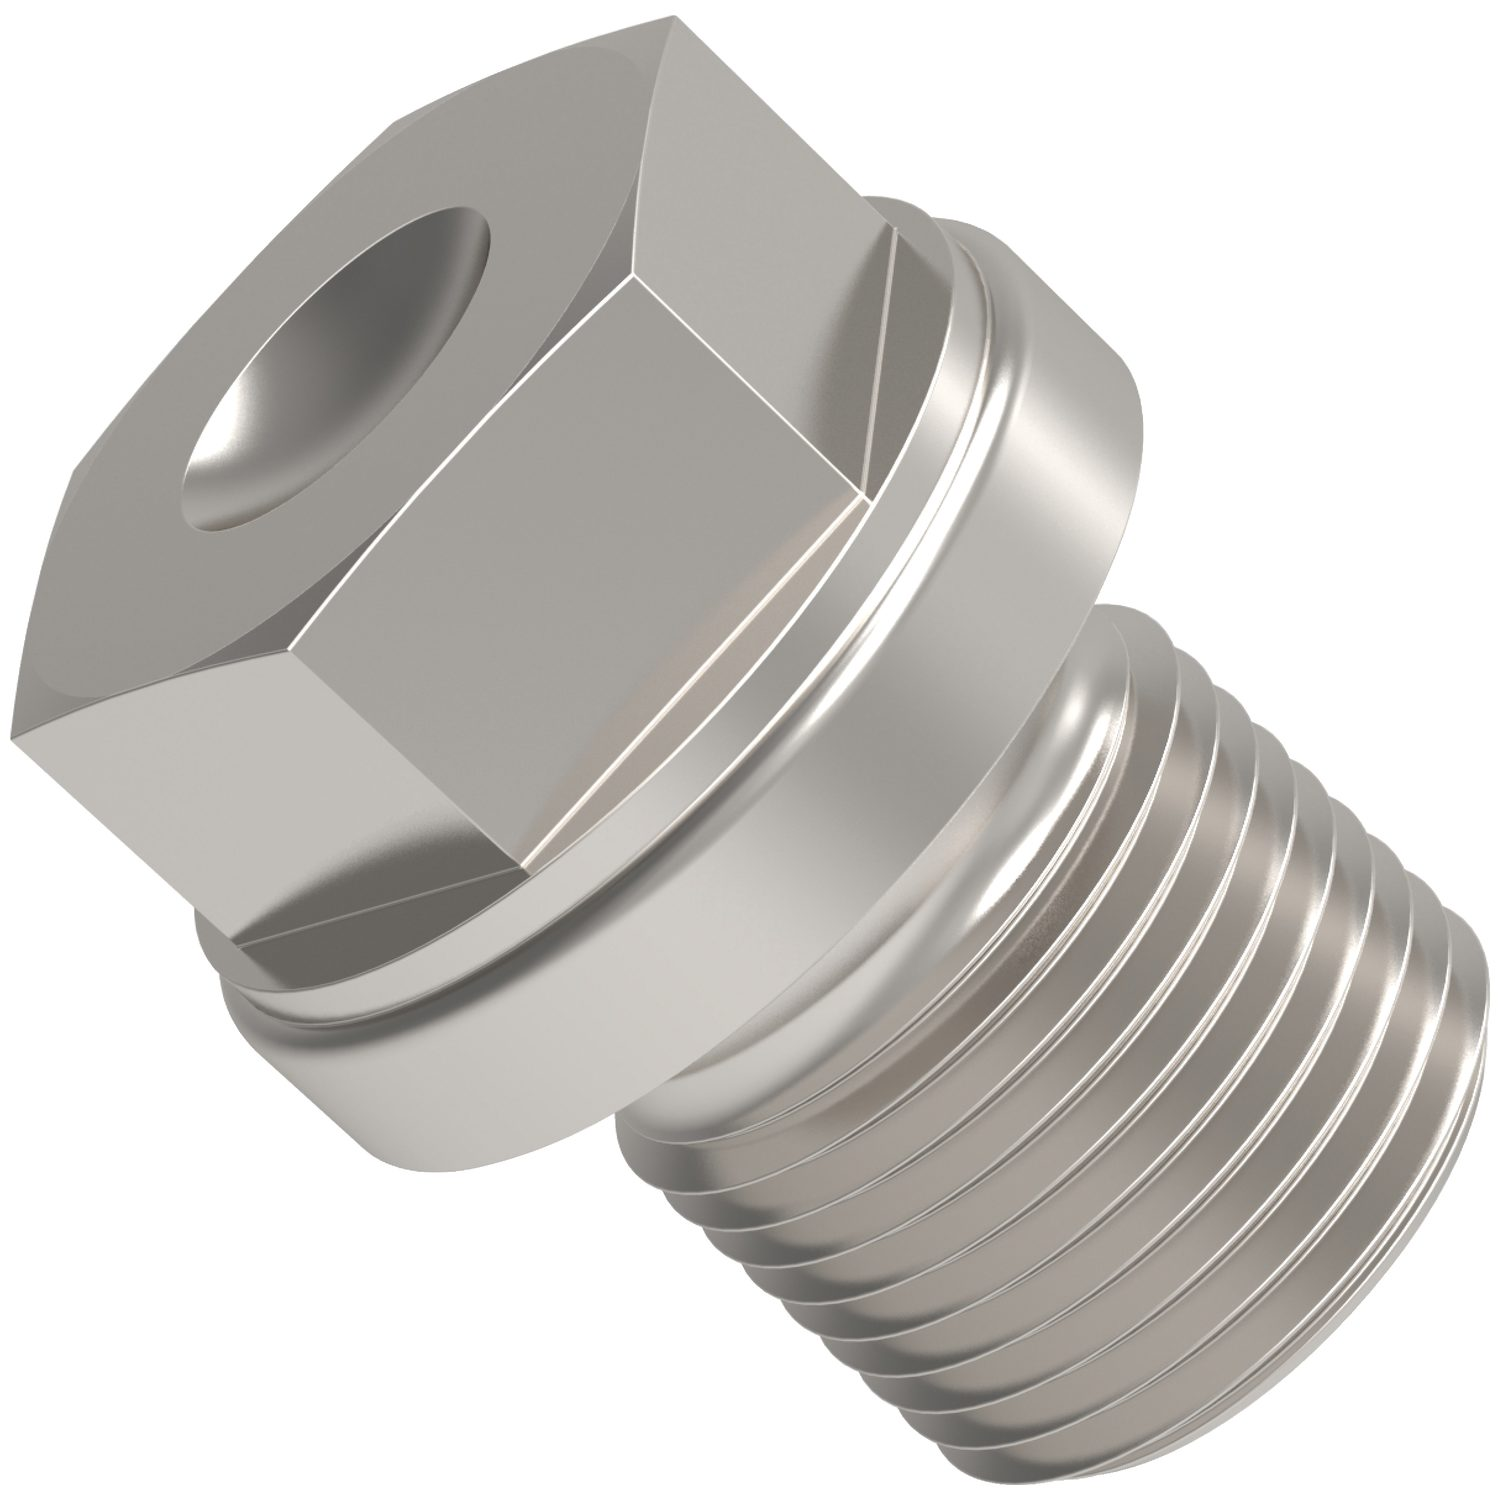 Blanking Plugs Heavy Duty Blanking plugs, heavy duty for metric or BSP (british standard pipe threads). In stainless, steel and brass. To DIN 910.